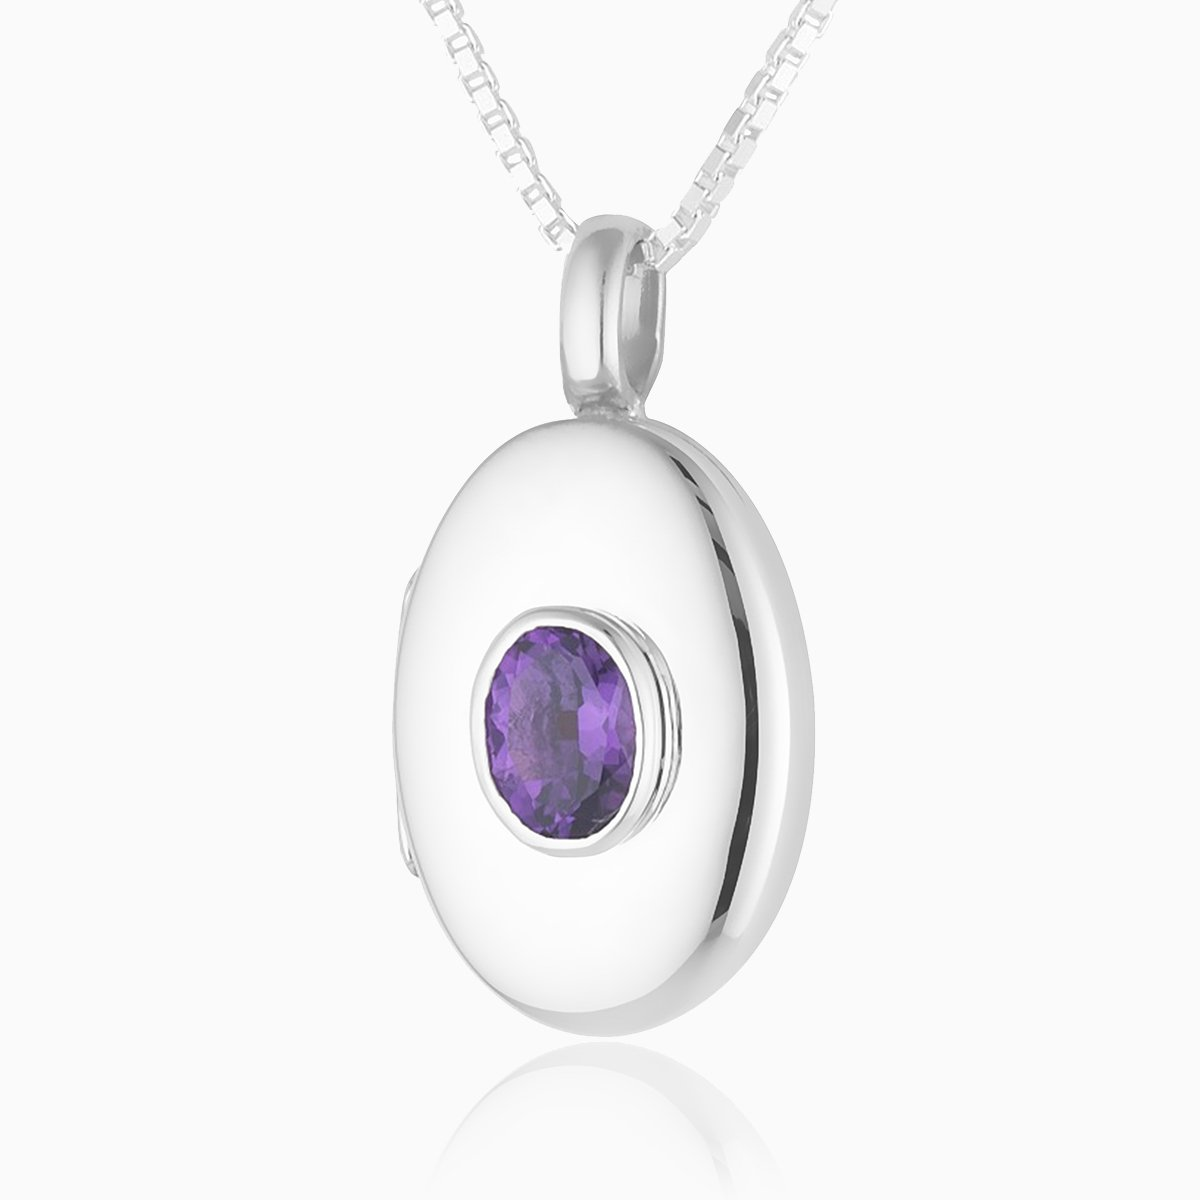 Product title: Amethyst Oval Locket, product type: Locket